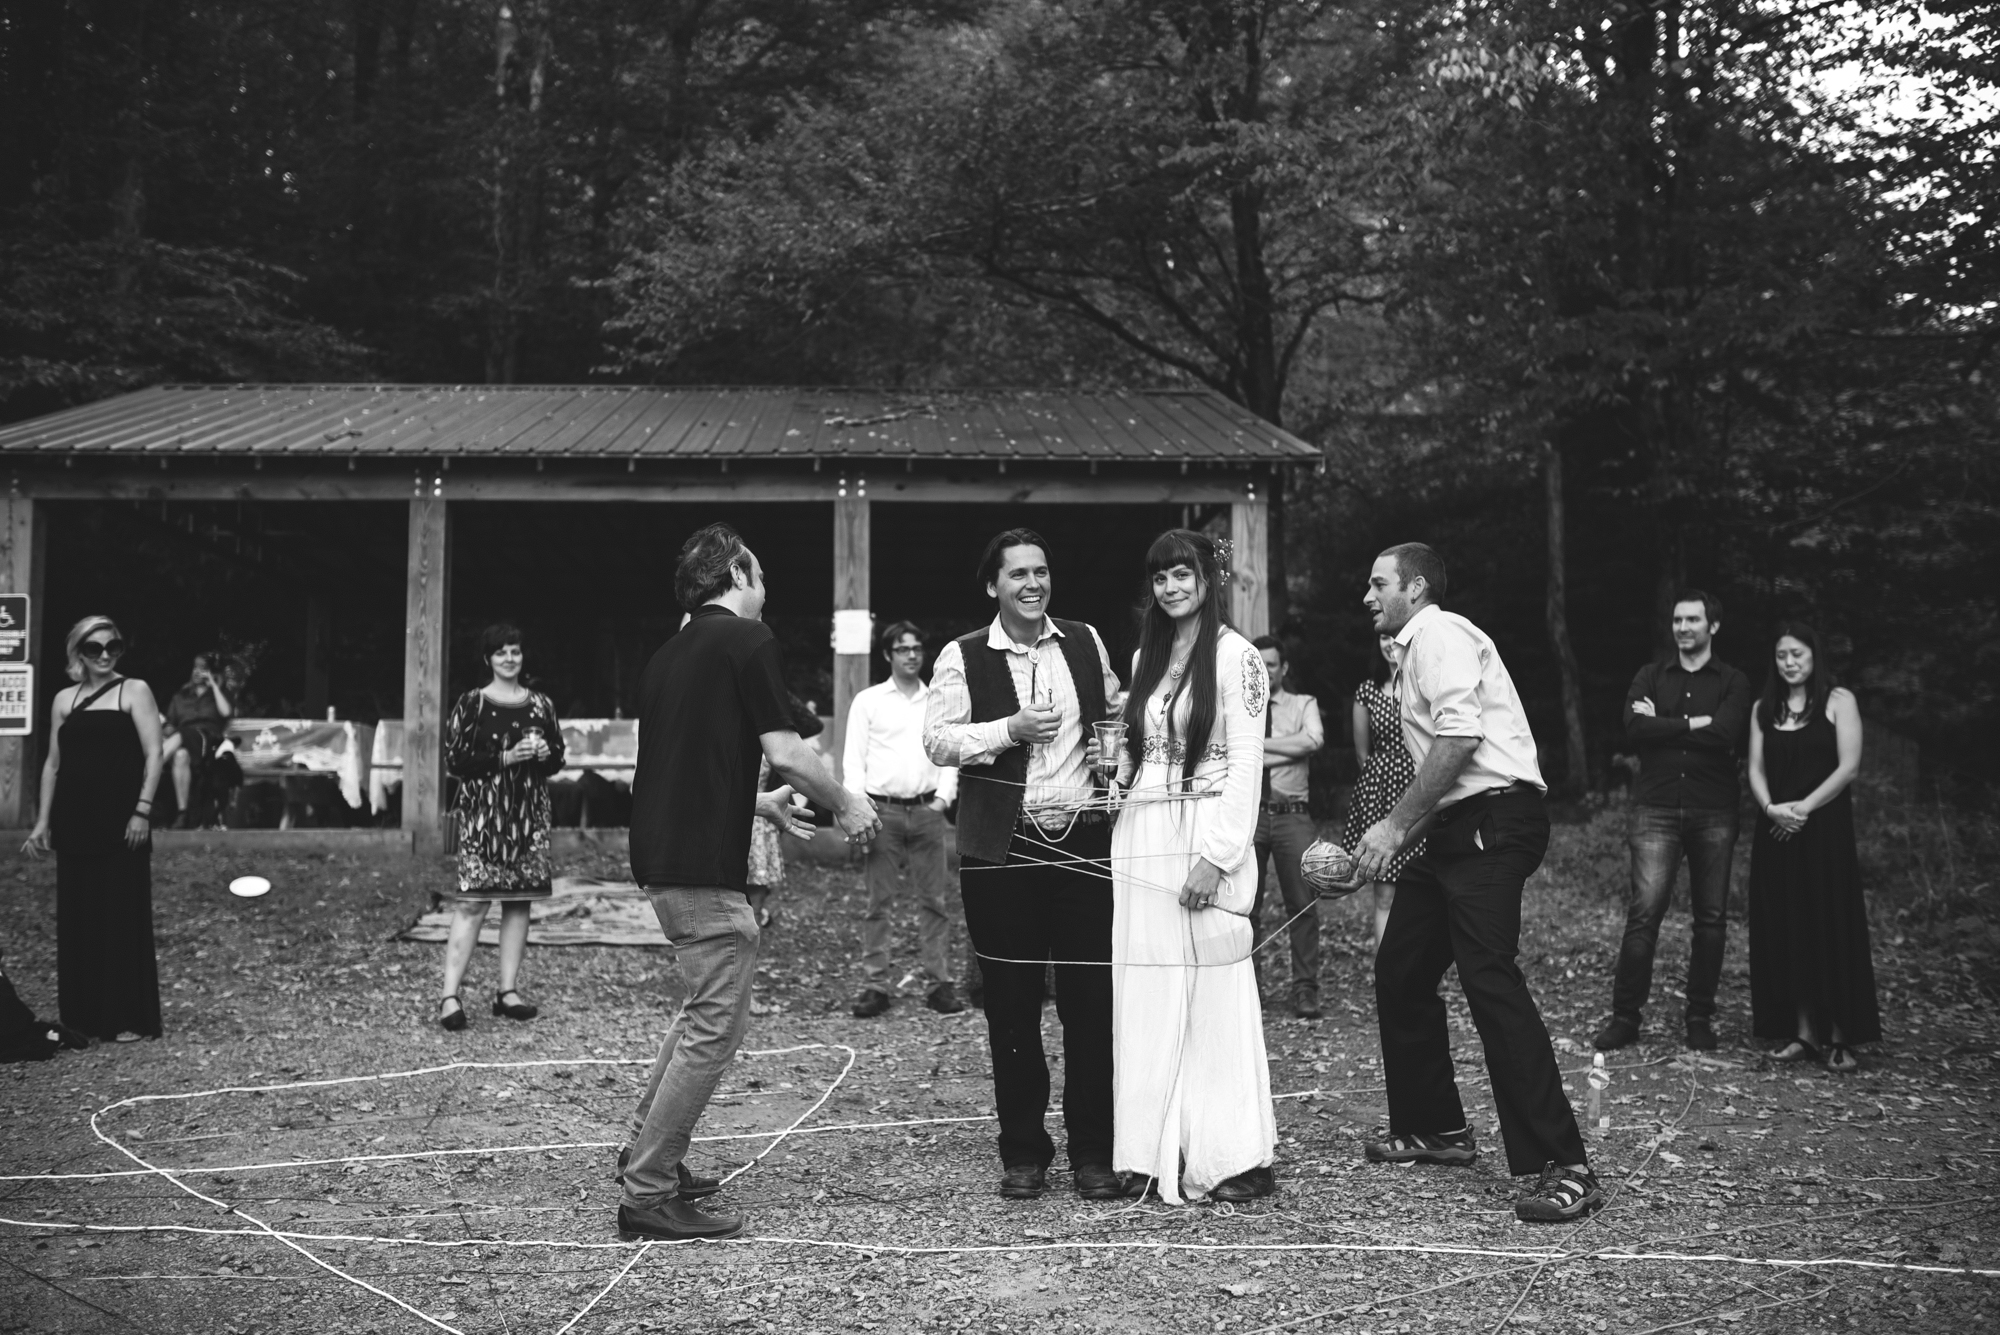 Mountain Wedding, Outdoors, Rustic, West Virginia, Maryland Wedding Photographer, DIY, Casual, bride and groom being joined with yarn, black and white photo, yarn ceremony